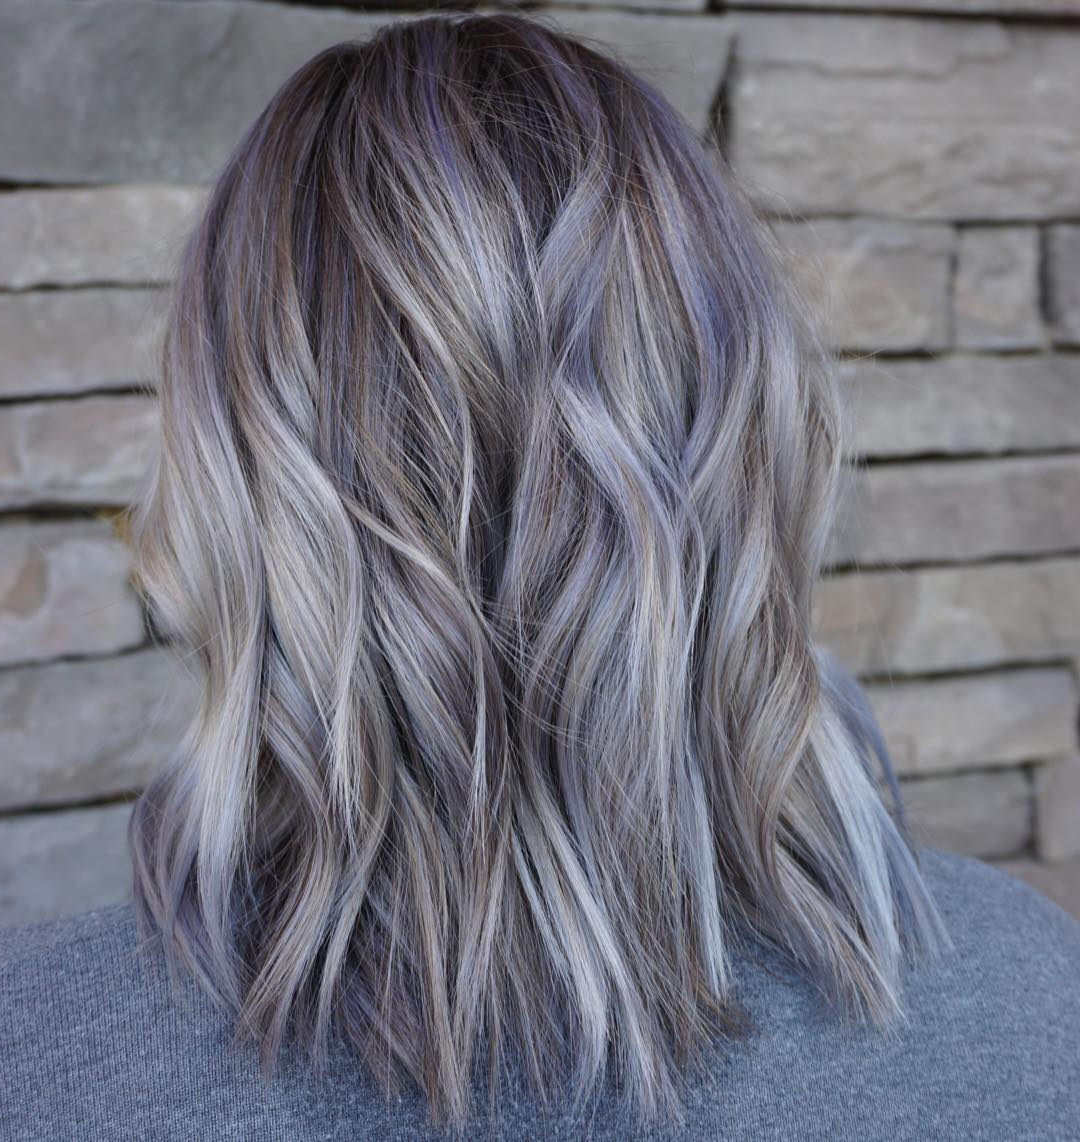 10 Wavy Haircuts For Medium Length Hair – Color Me Gorgeous Intended For 2018 Mid Length Layered Ash Blonde Hairstyles (View 17 of 20)